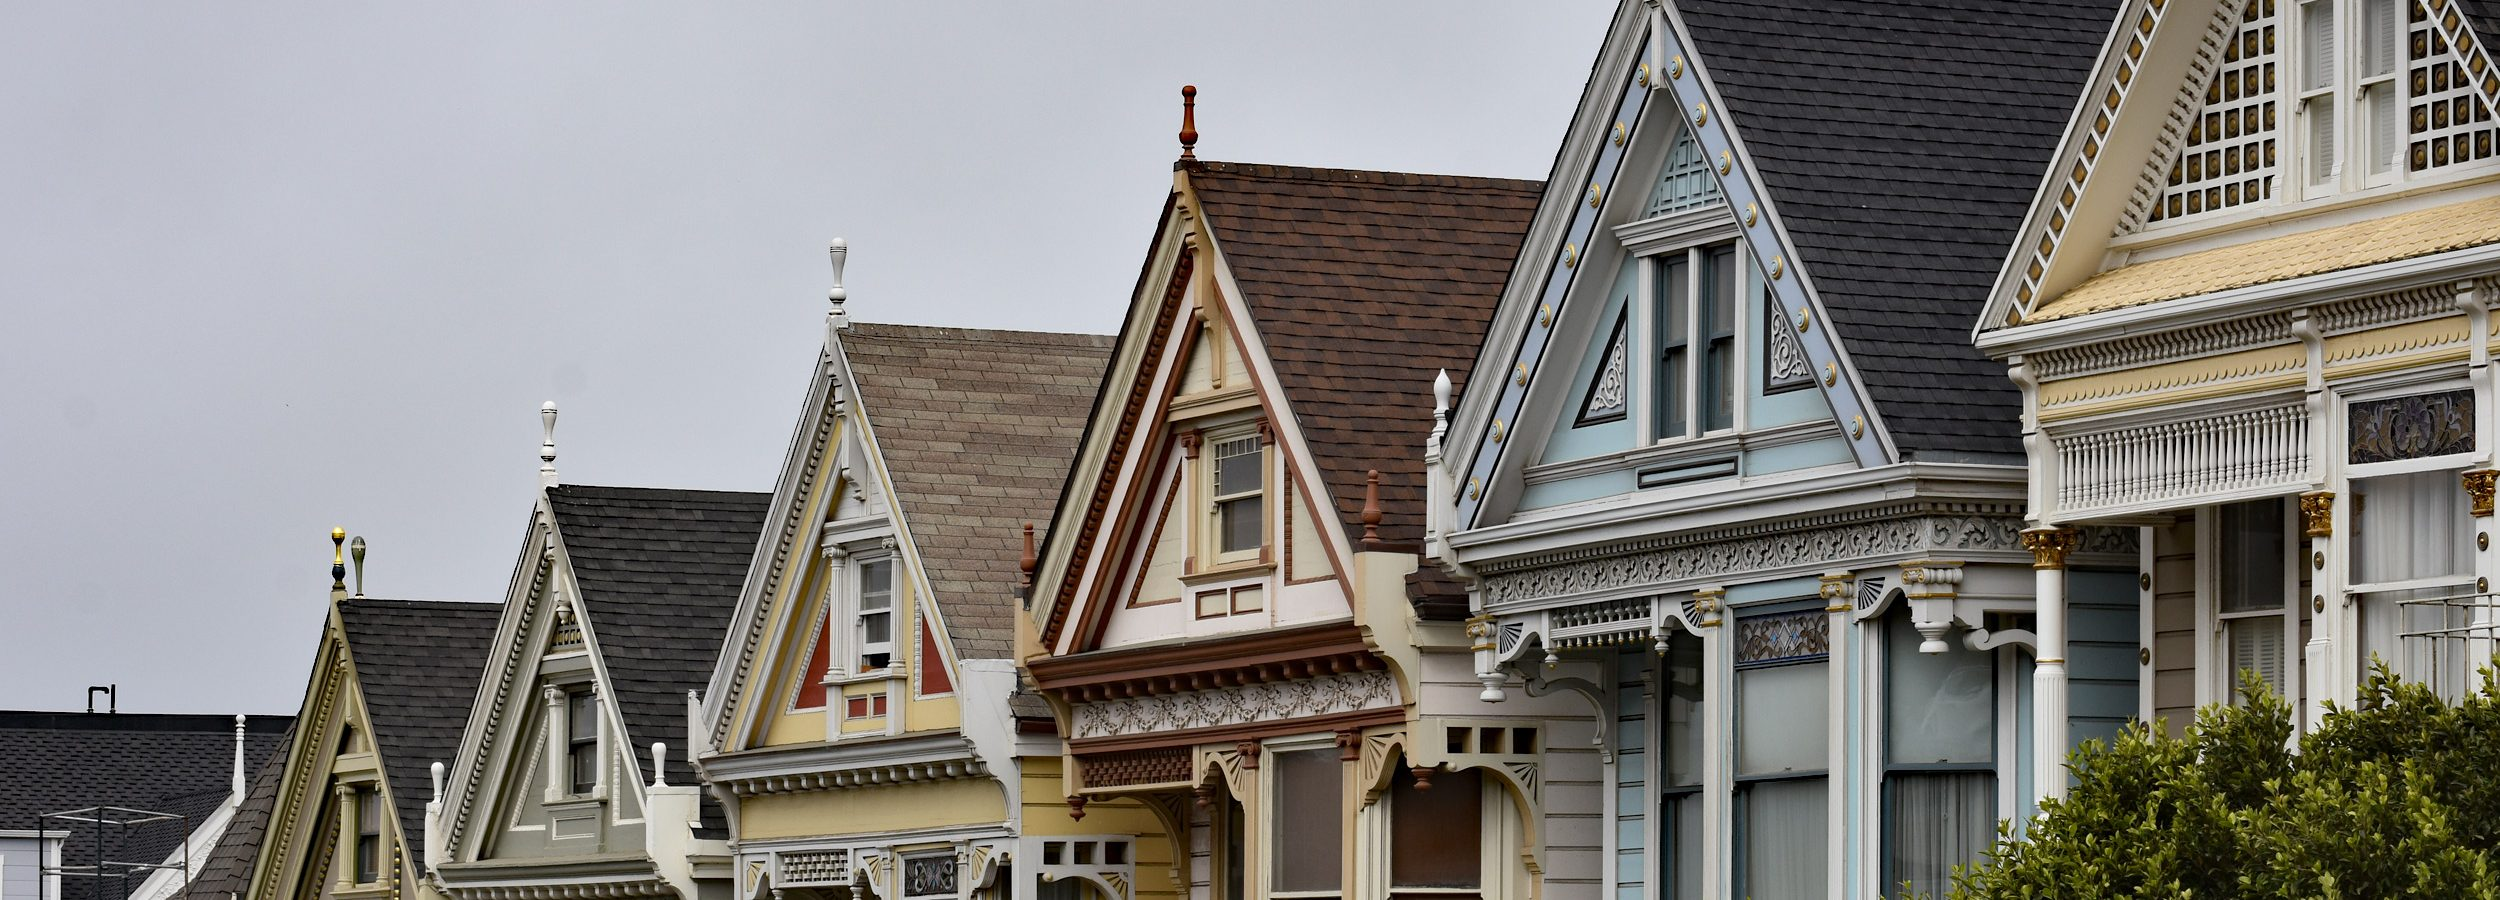 kamienice Painted Ladies w San Francisco